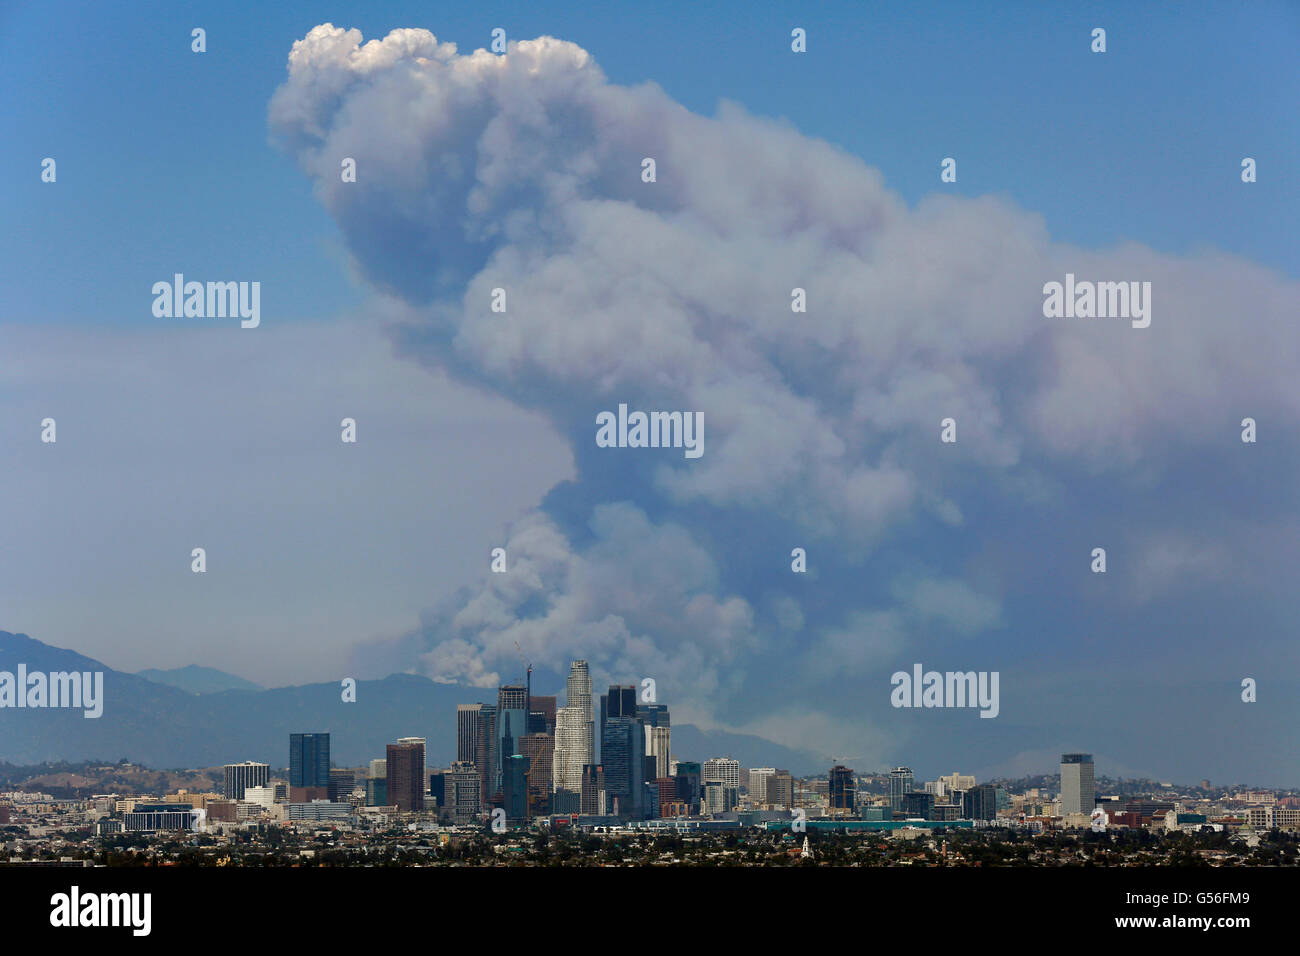 Los Angeles, California, USA. 20th June, 2016. Smoke is seen in the San Gabriel Mountains as two fires burn during - Stock Image